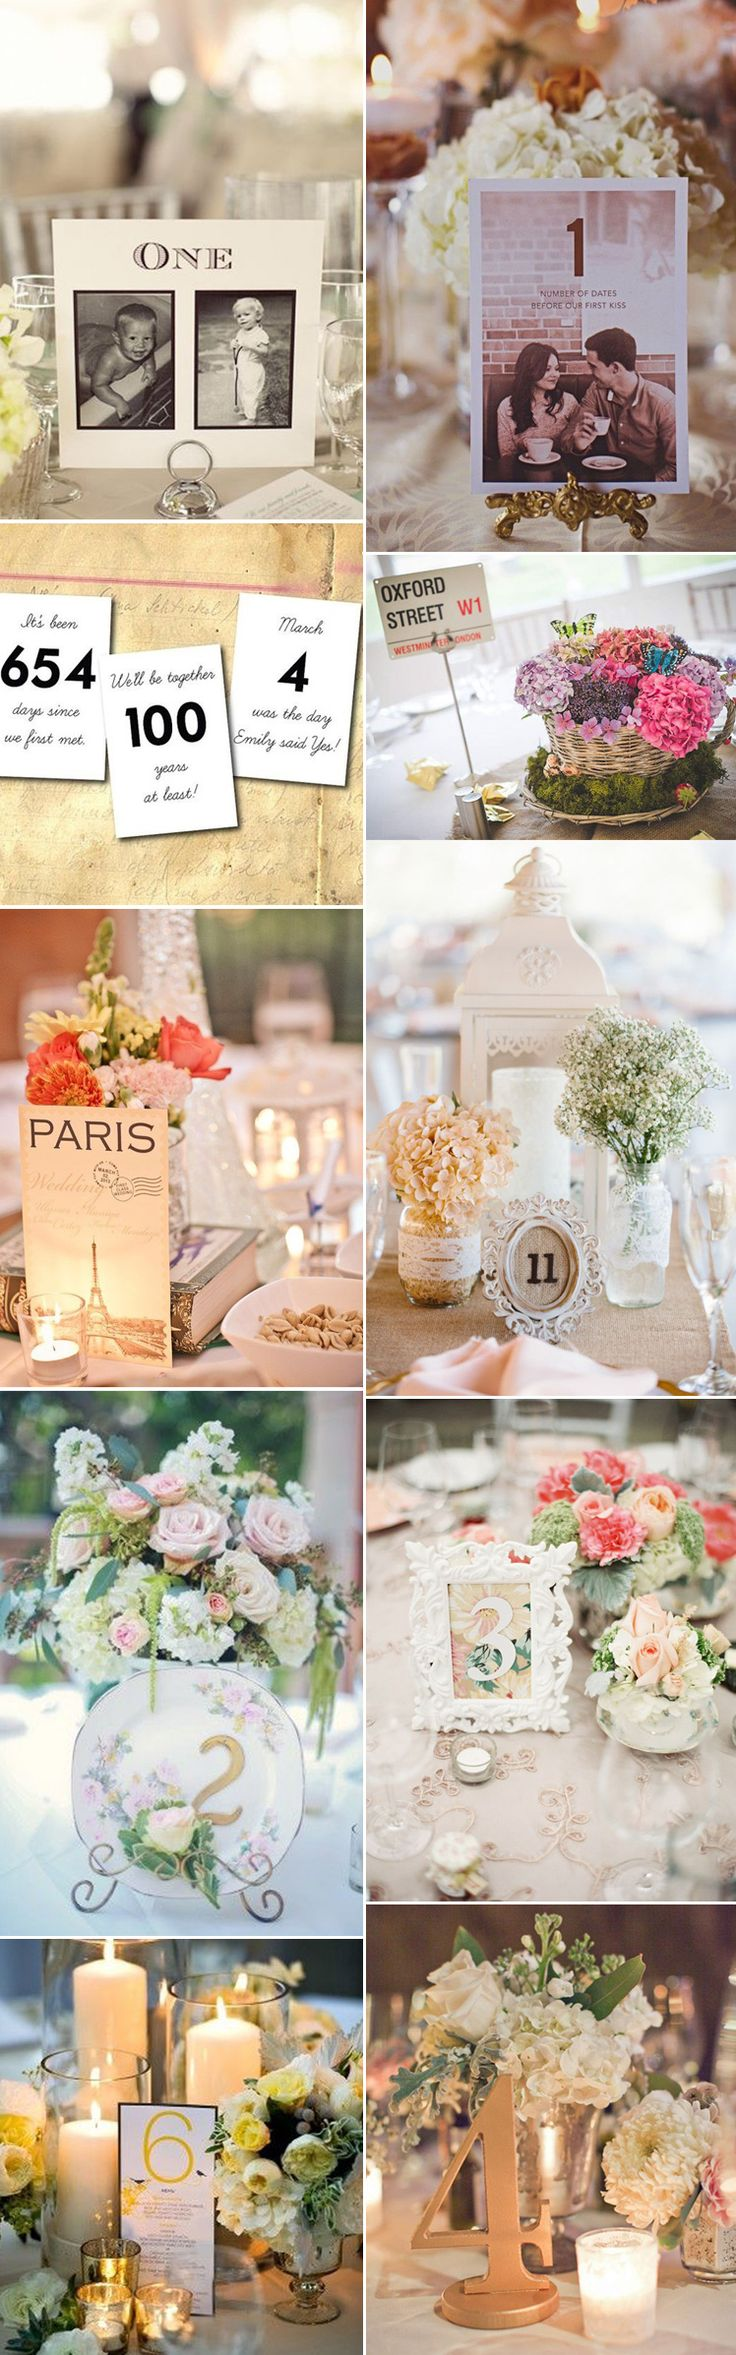 Get your guests talking with these inspirational ideas for wedding table numbers from scrabble words, the natural outdoors and vintage frames